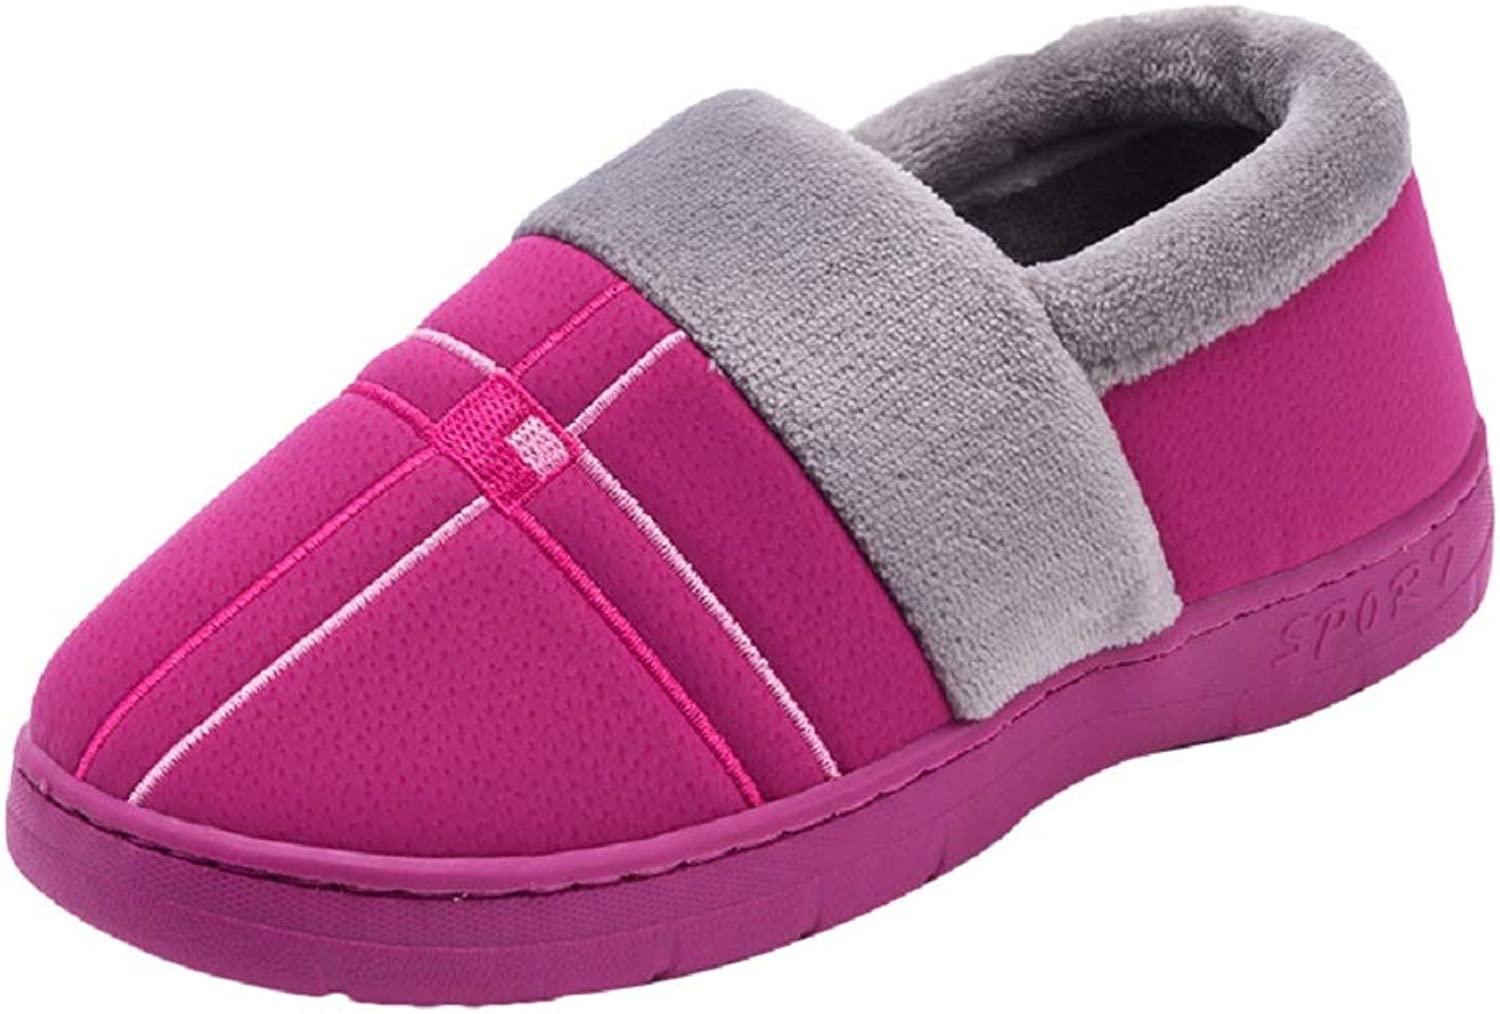 Winter Home Slipper Women Warm Soft Cotton Slippers Non-Slip Flat Confinement Cotton shoes for Ladies and Man,Purple,3637